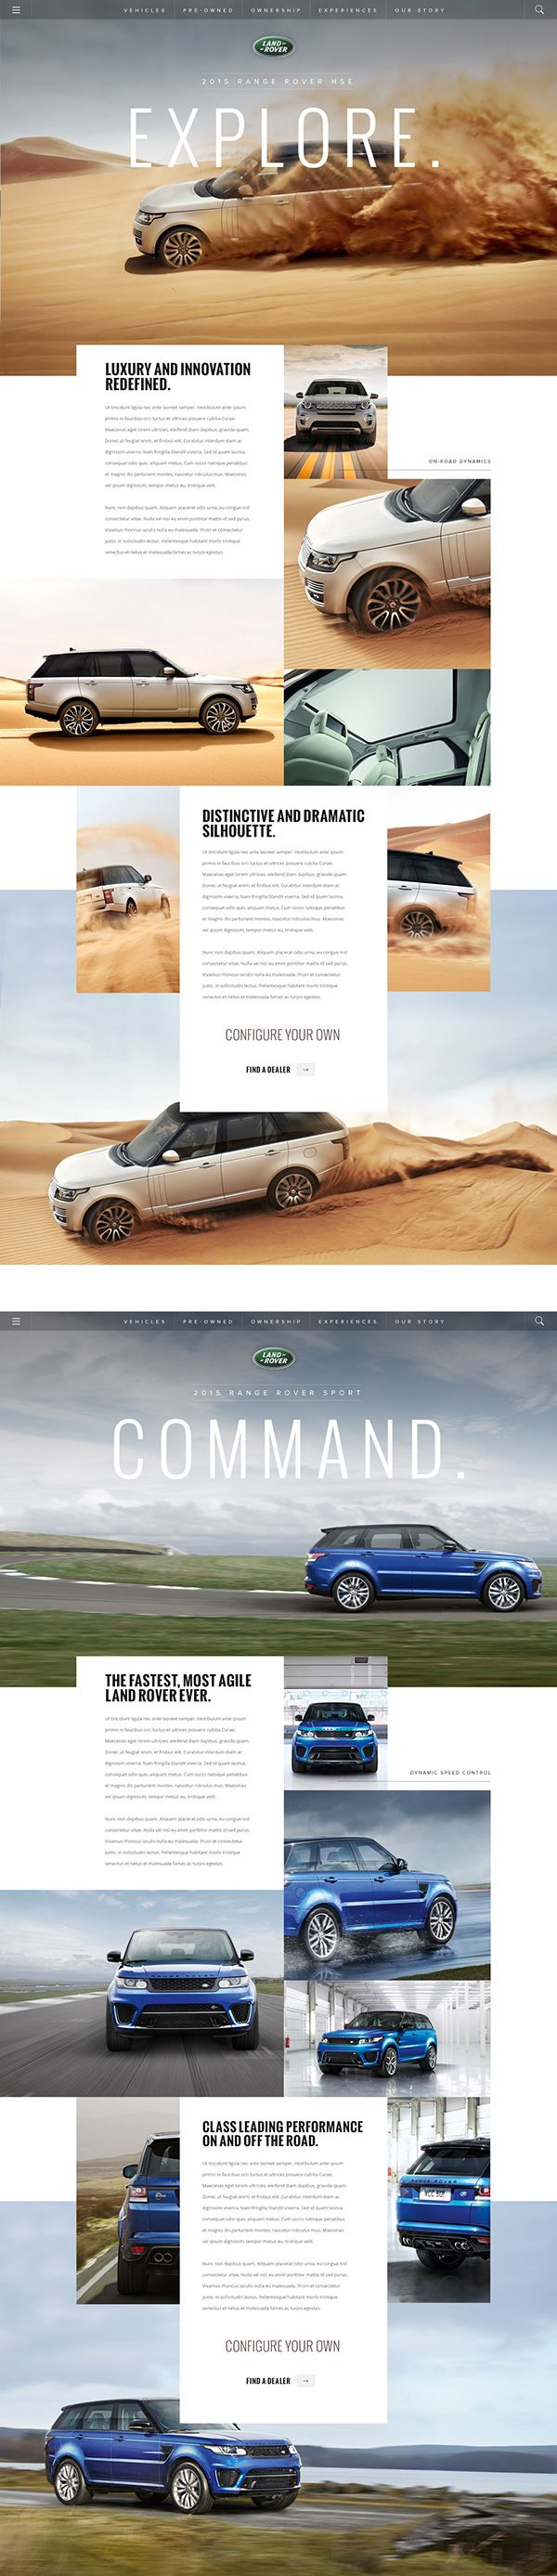 LandRover.com on Behance. When looking for website design inspiration, look toward the best brands. webdesign inspiration www.niceoneilike.com